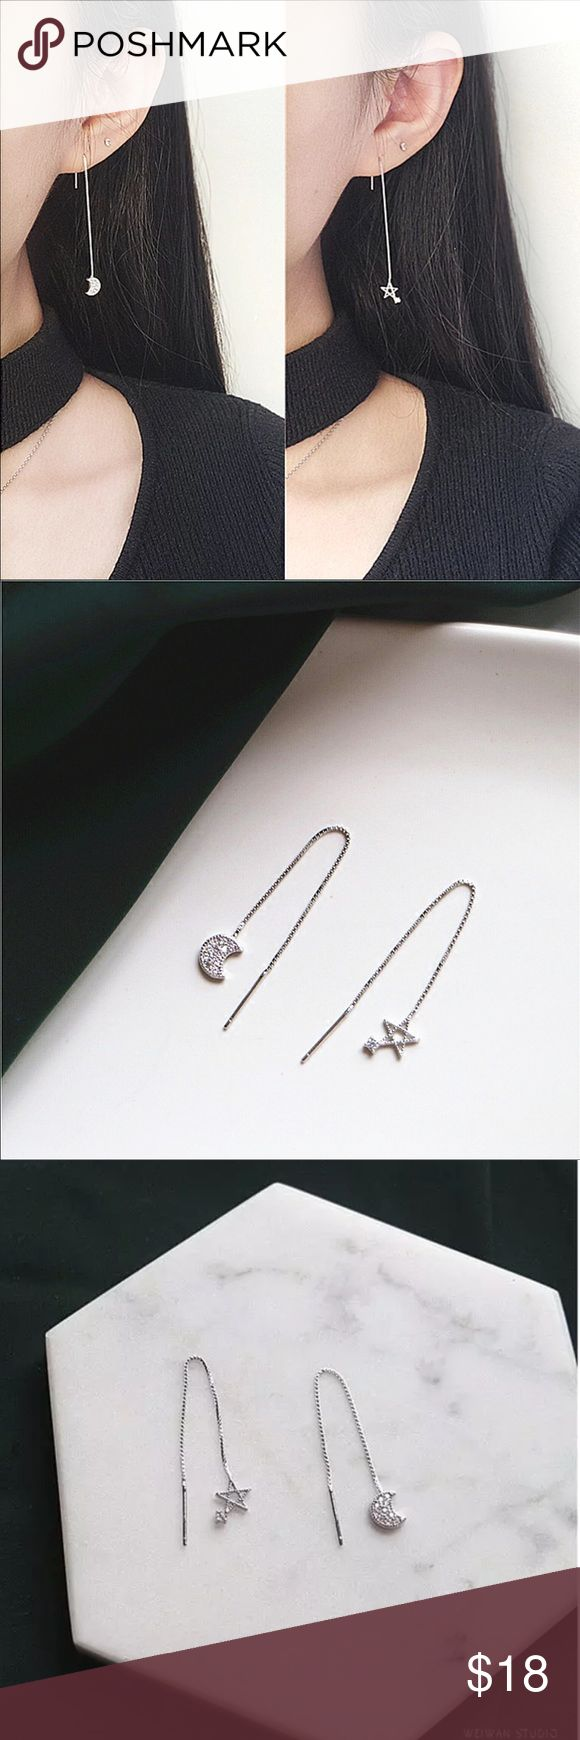 Women moon and star asymmetric design earring Brand new! Made of 925 sterling silver. Length 2.75 inches. Price is firm! No trade! If it's been sold out, welcome to leave messages for ordering. Usually it takes 2-4 weeks. Jewelry Earrings